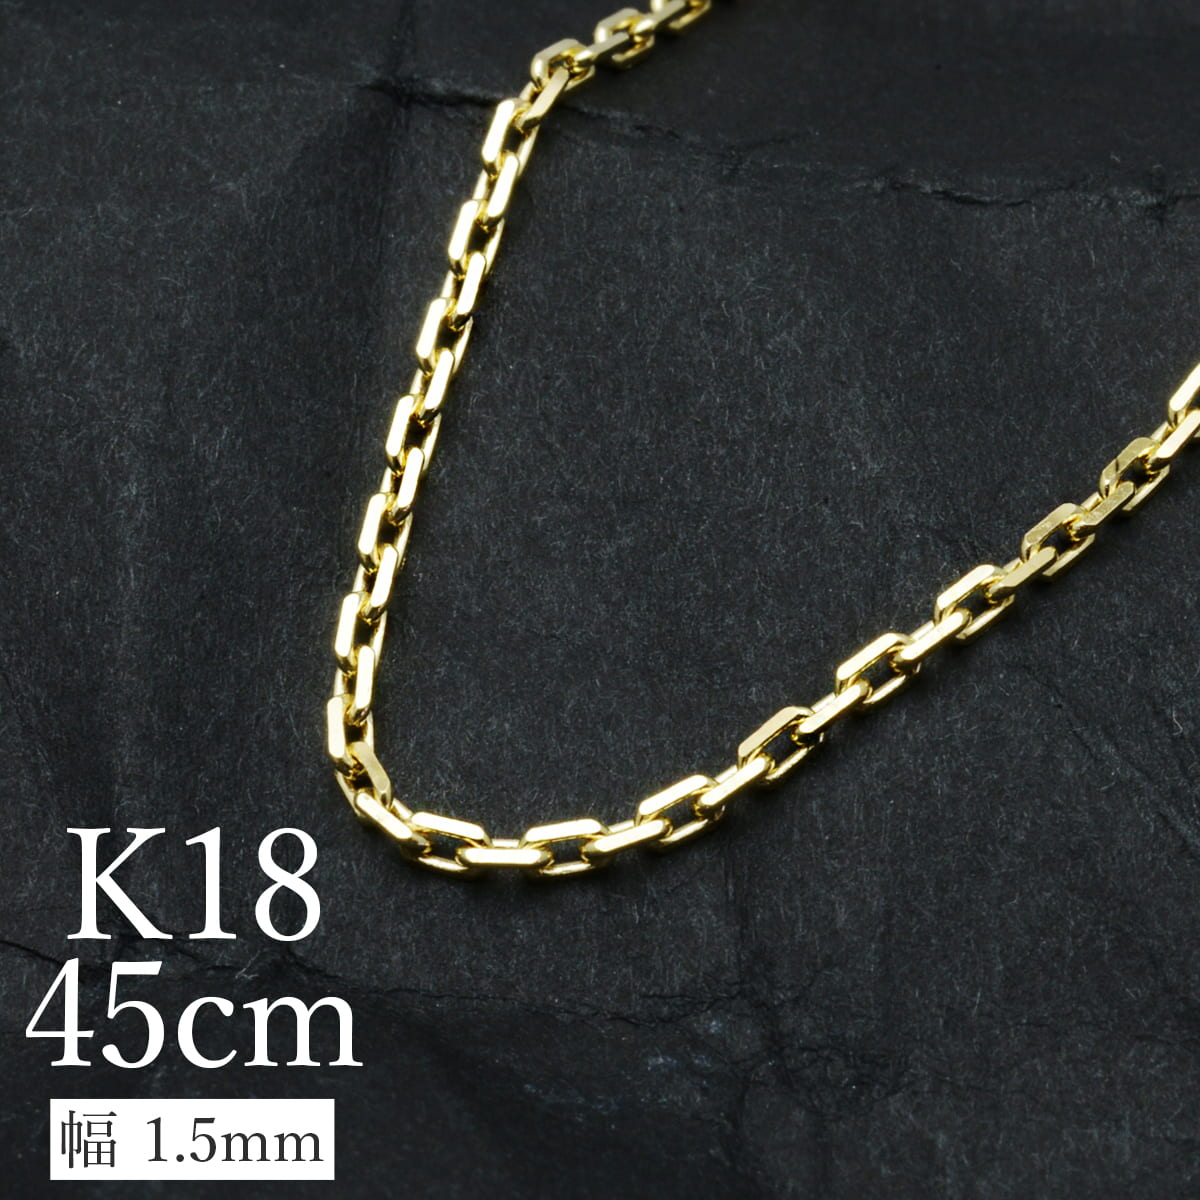 k18ネックレス K18 イエローゴールド メンズ 男性 カットアズキチェーン 幅1.5mm チェーン 45cm/ プレゼント ギフト gold necklace ach1660c45